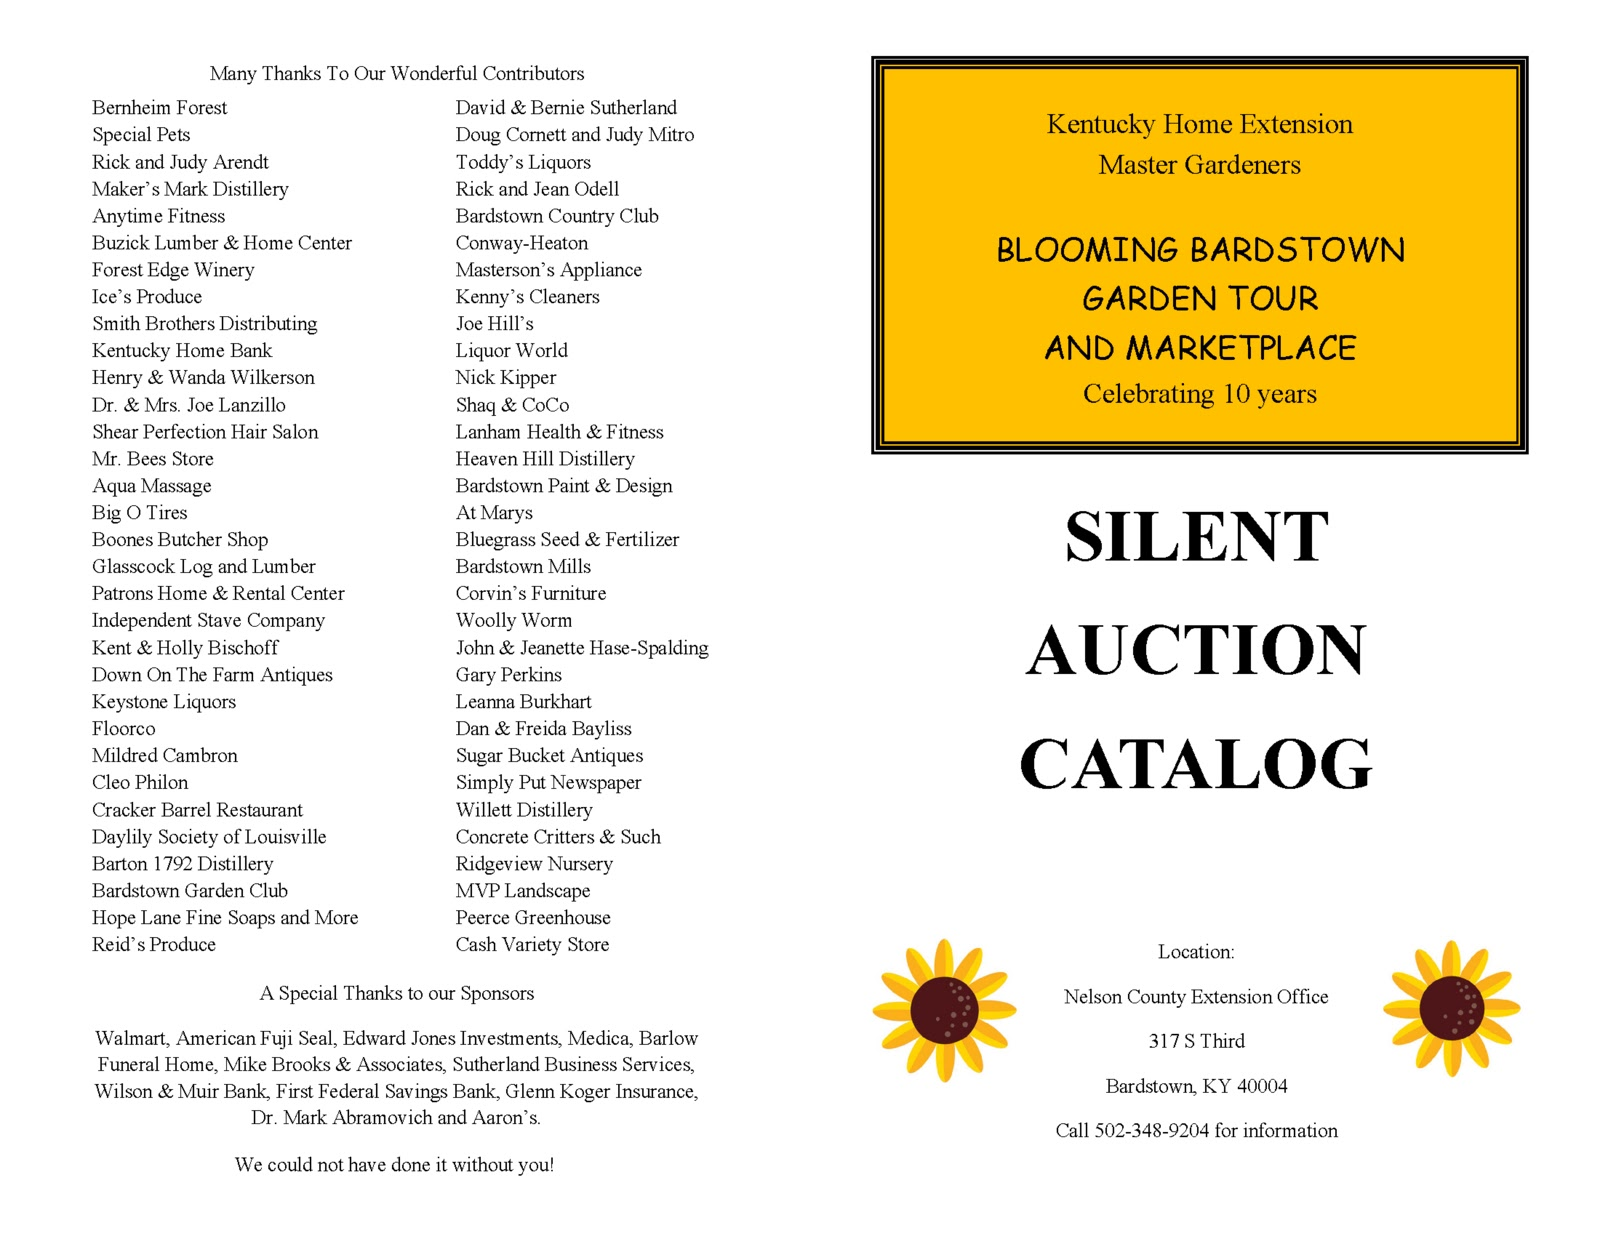 silent auction catalog template kentucky home gardens blooming bardstown garden tour